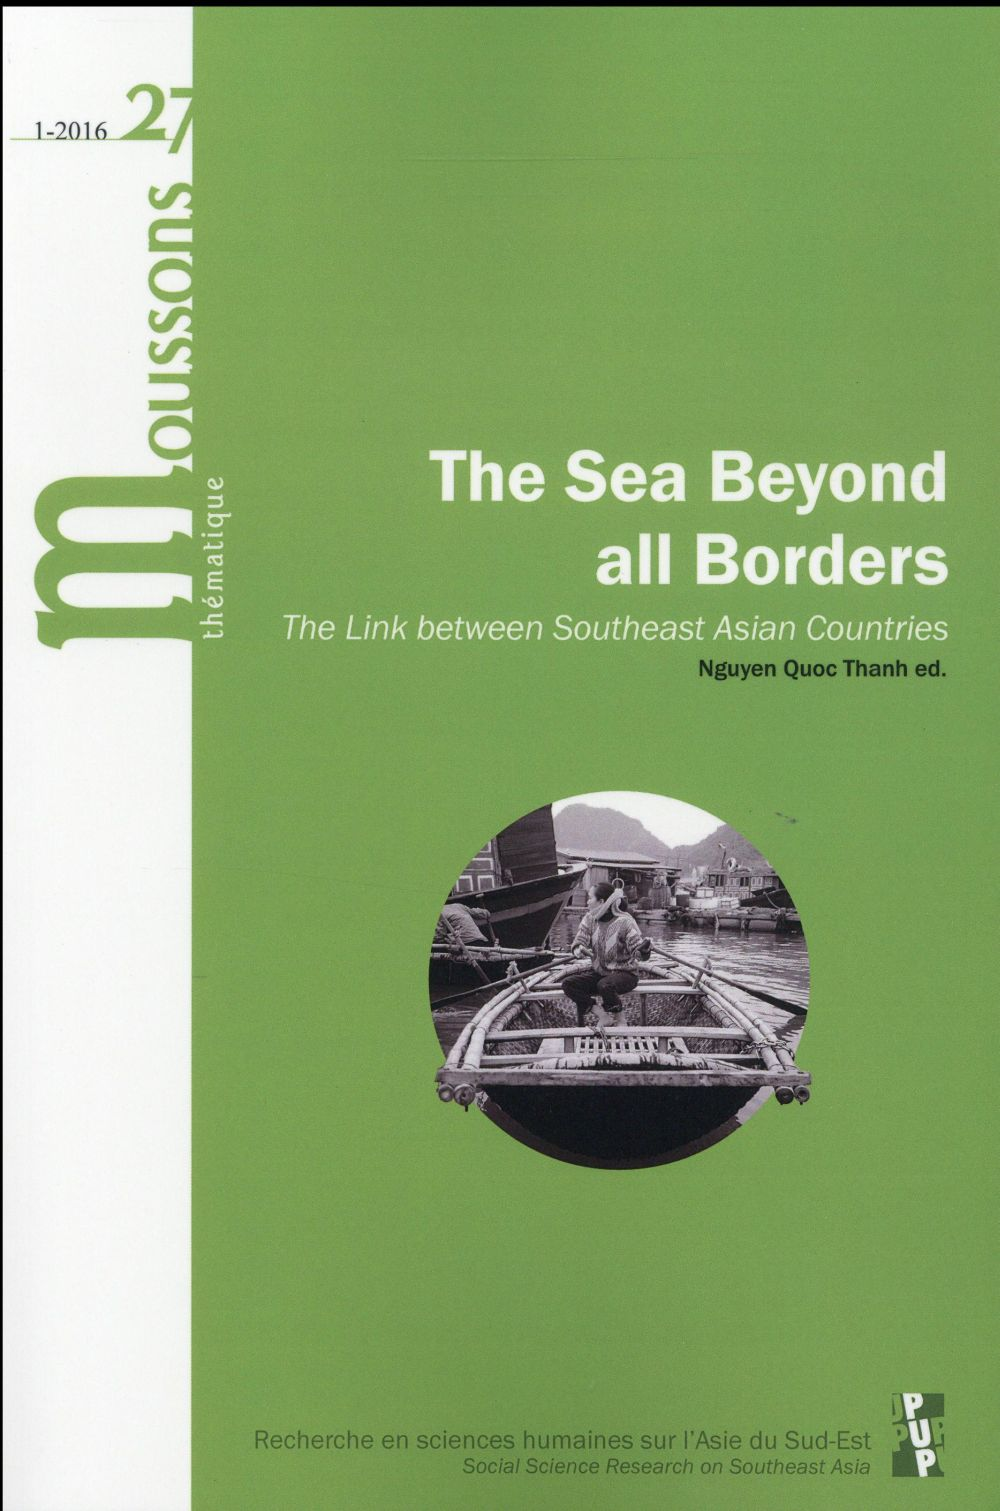 THE SEA BEYOND ALL BORDERS